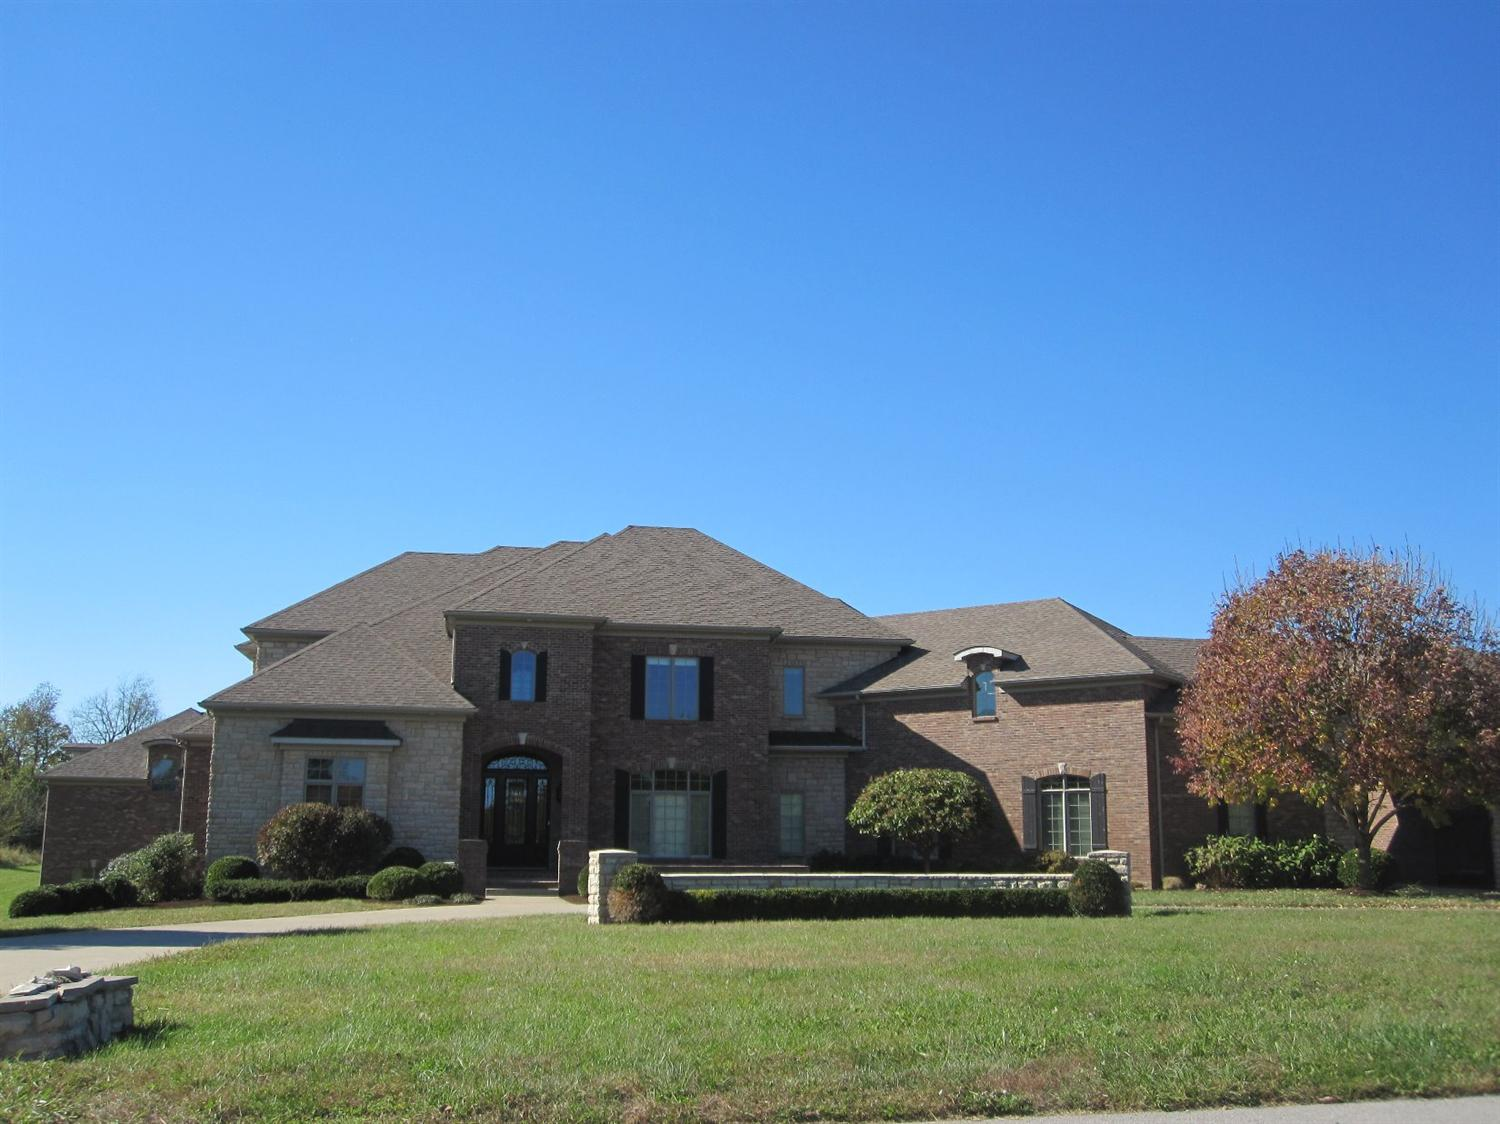 161 Pearl Ln, Nicholasville, KY